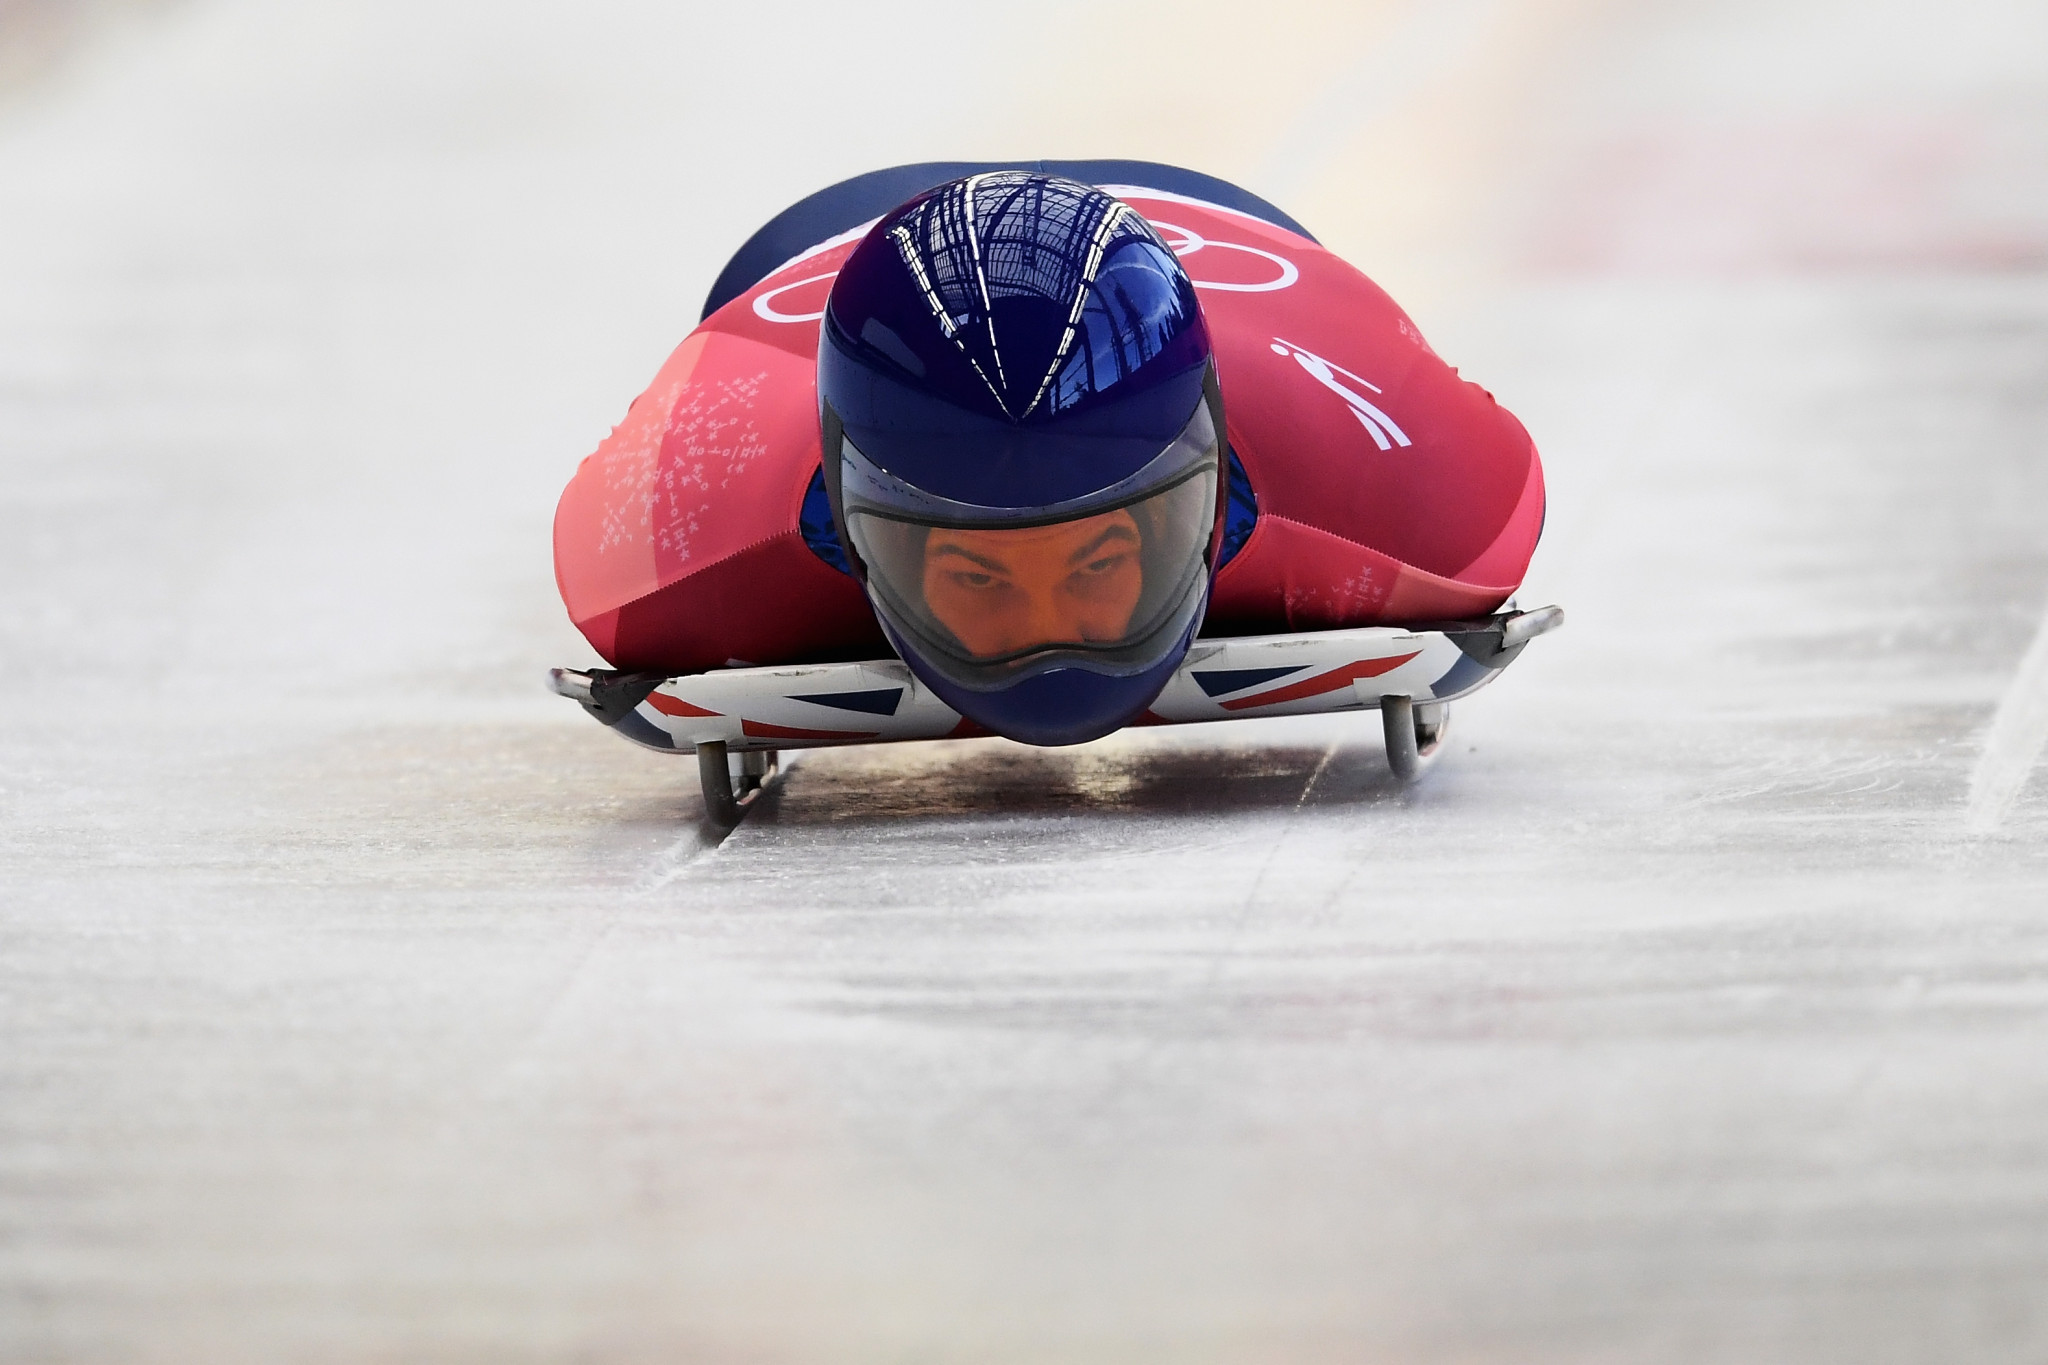 British Olympic medallist calls time on skeleton career